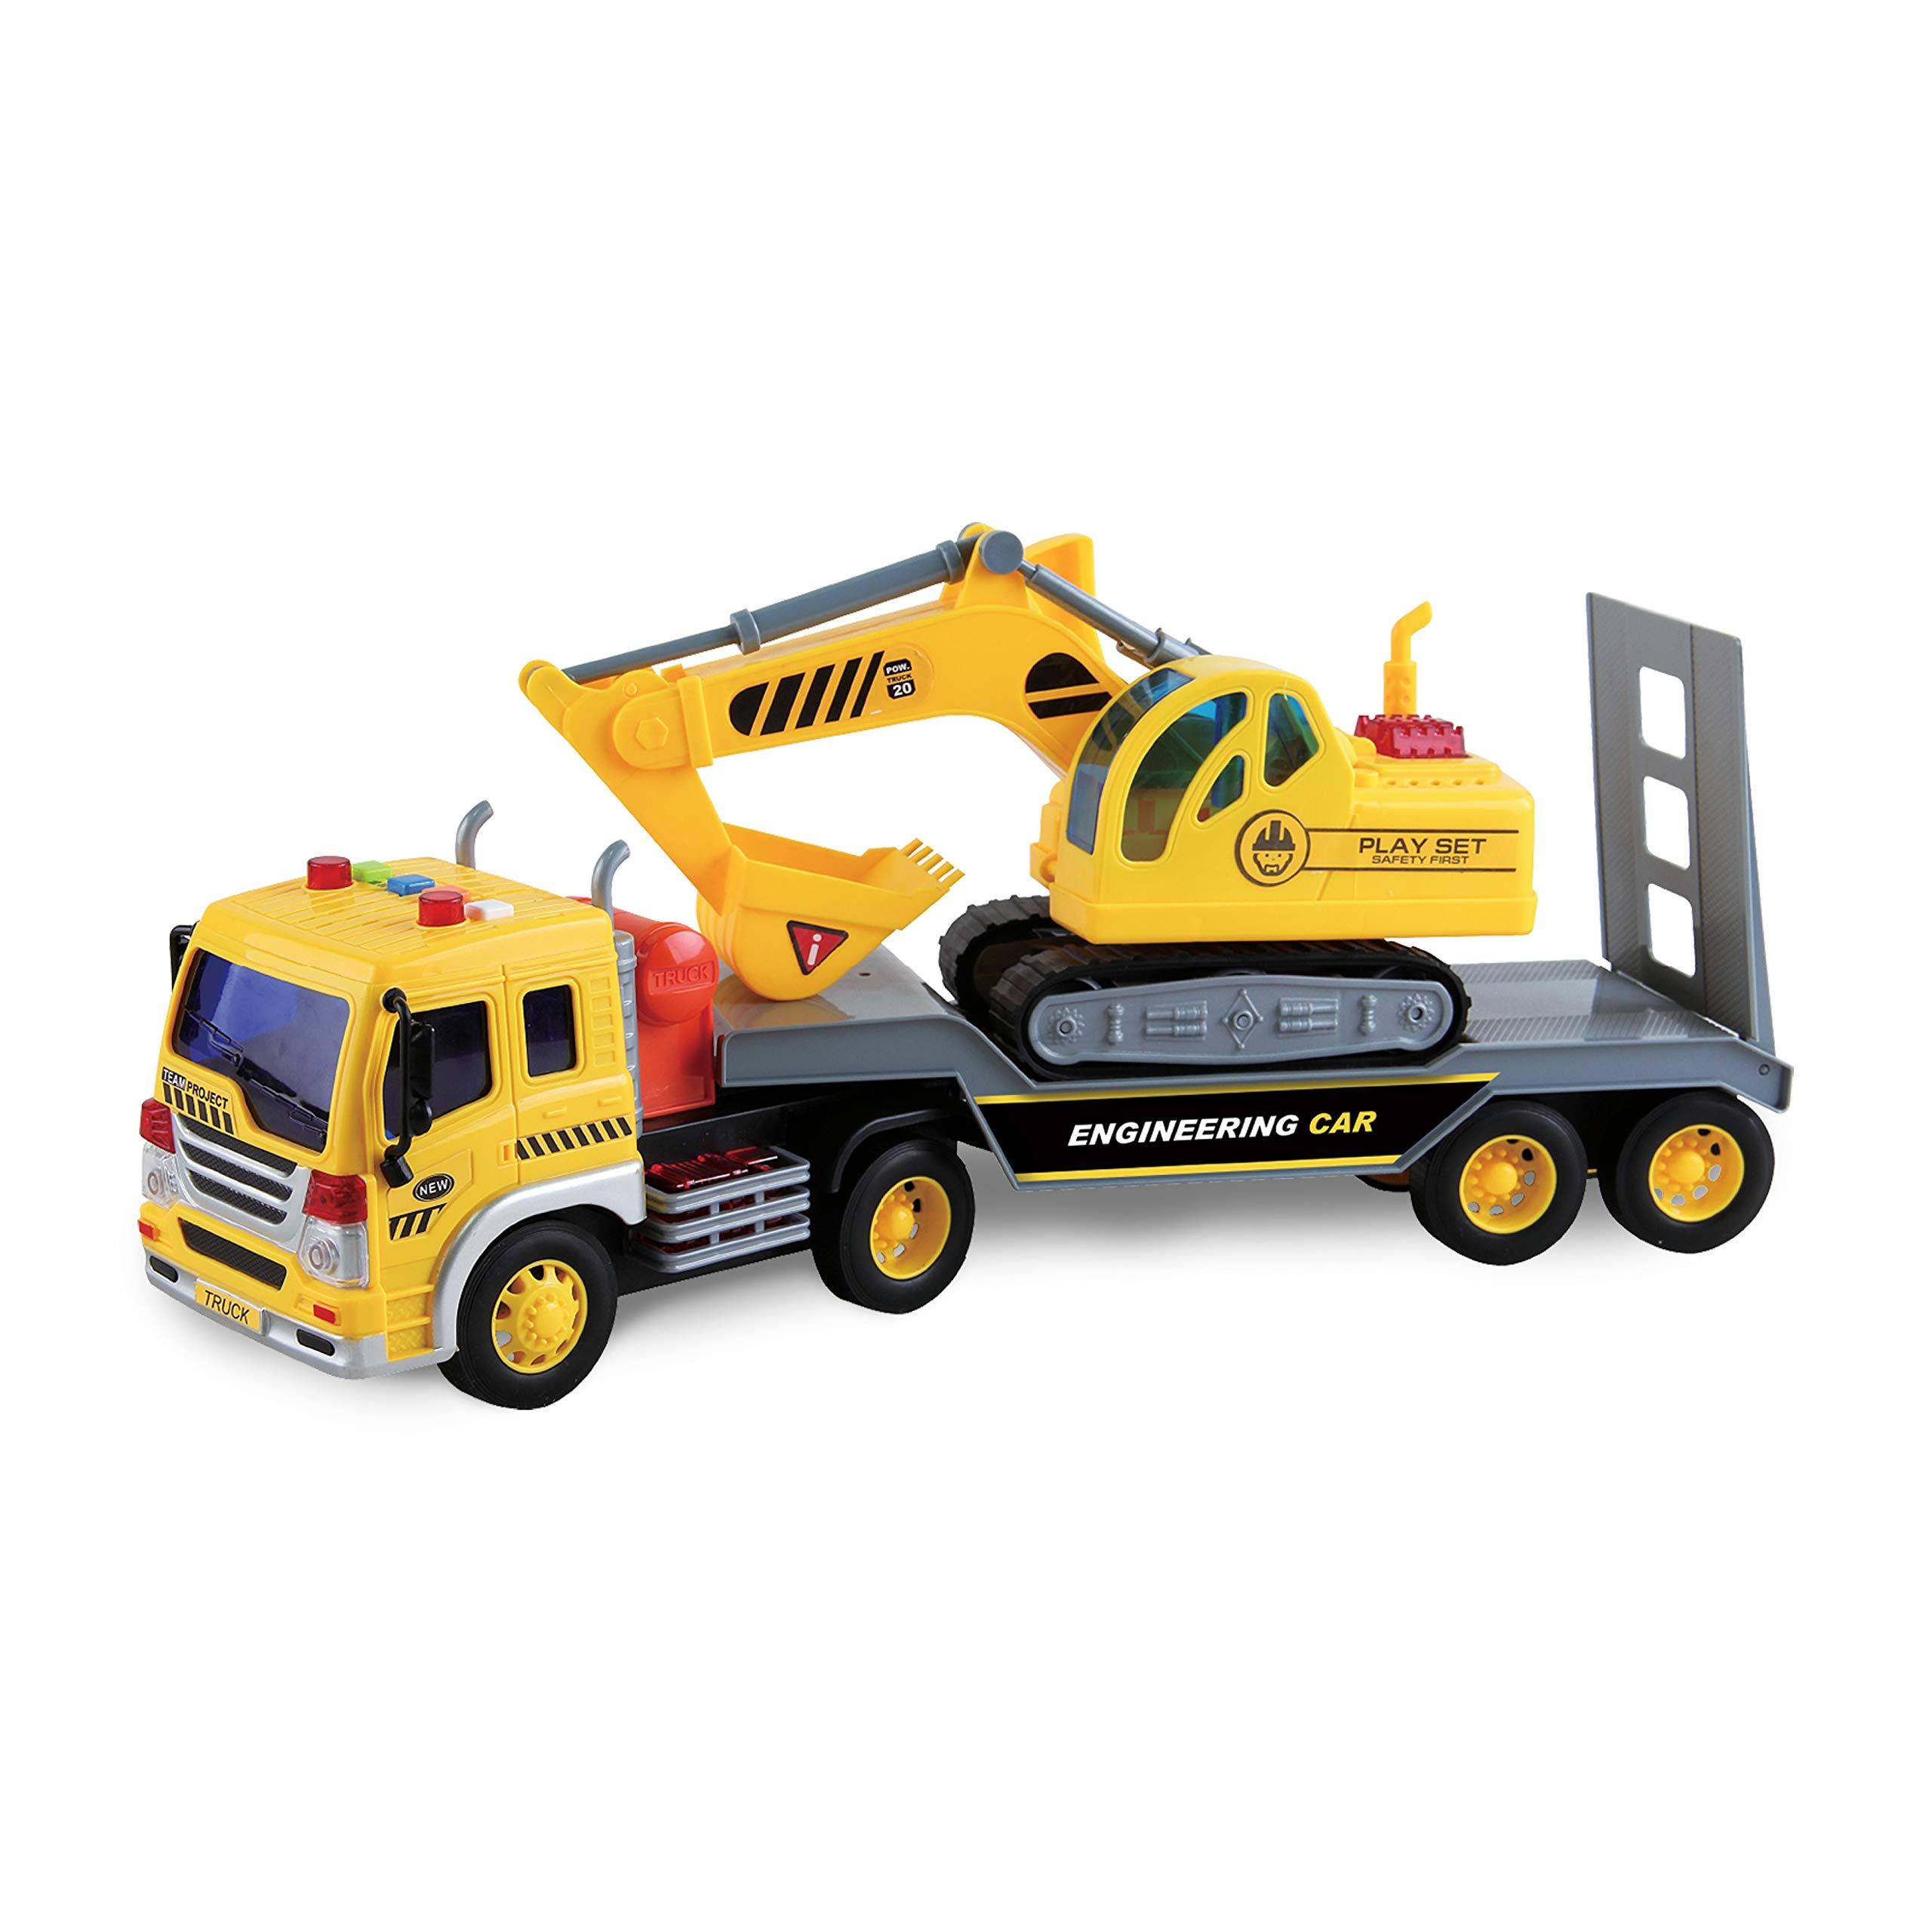 Maxx Action Long Hauler Excavator Truck - 1:16 Scale, With Realistic Lights and Sounds